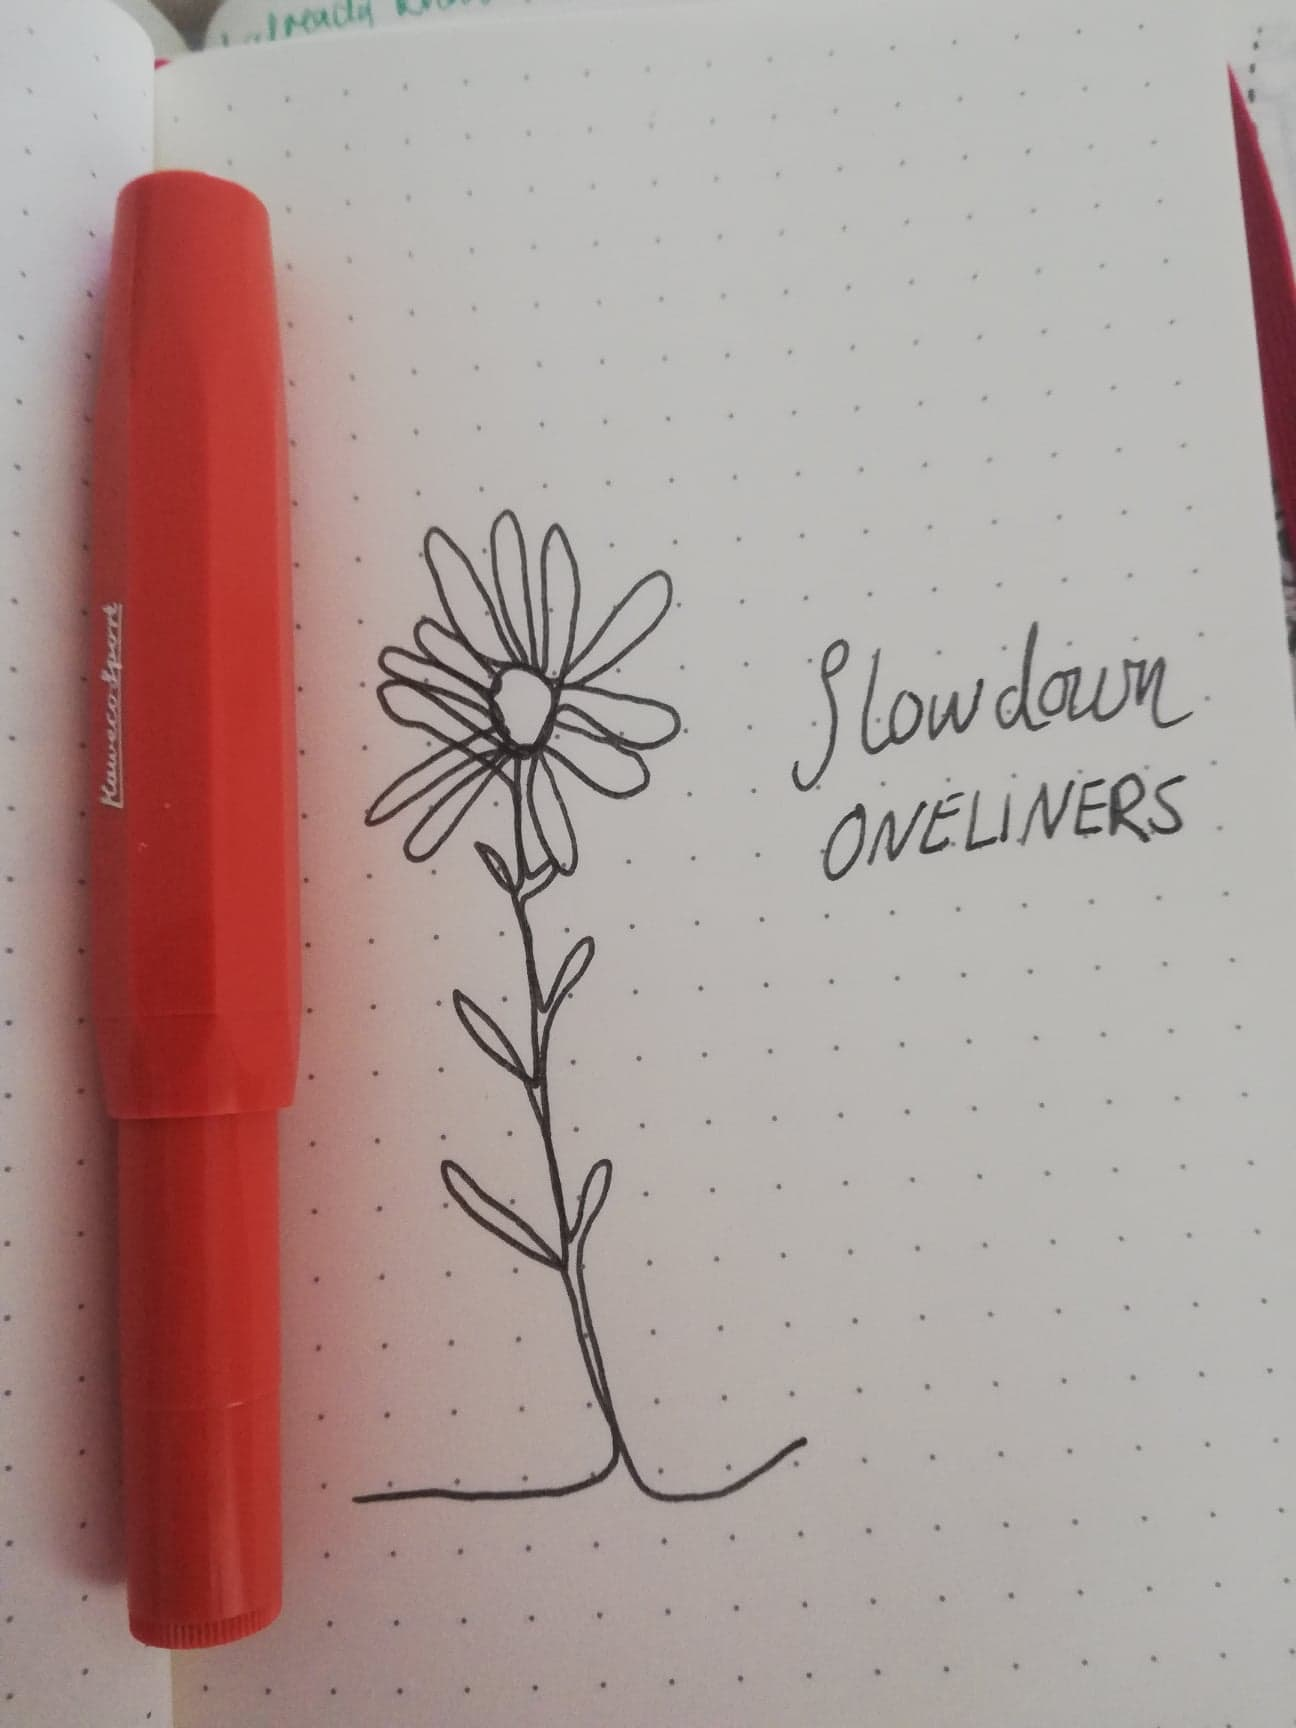 Slowdown Oneliners creating mindfully everyday